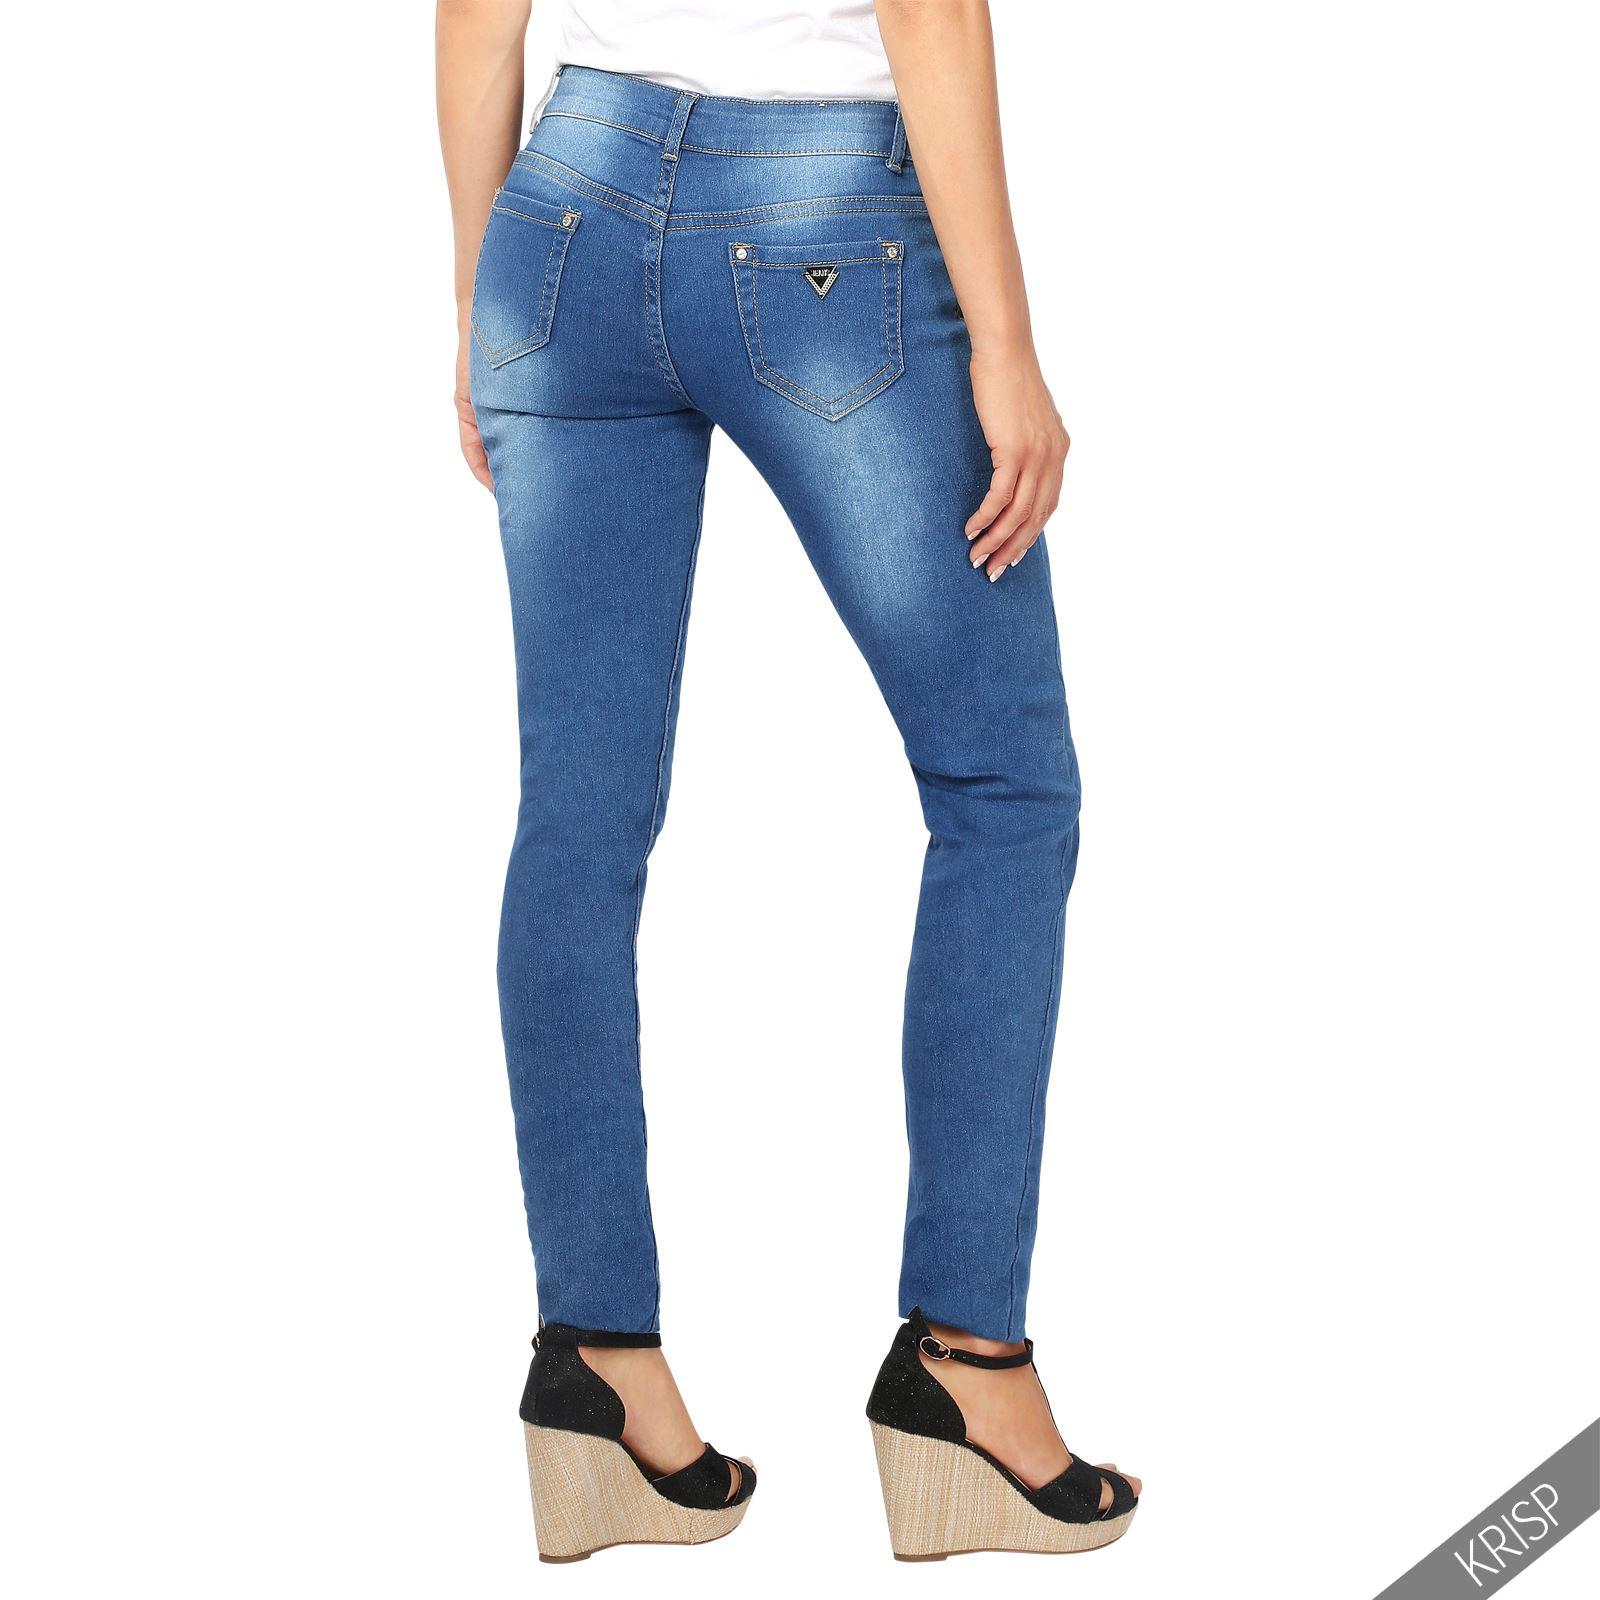 Shop American Eagle Outfitters for men's and women's jeans, T's, shoes and more. All styles are available in additional sizes only at deletzloads.tk